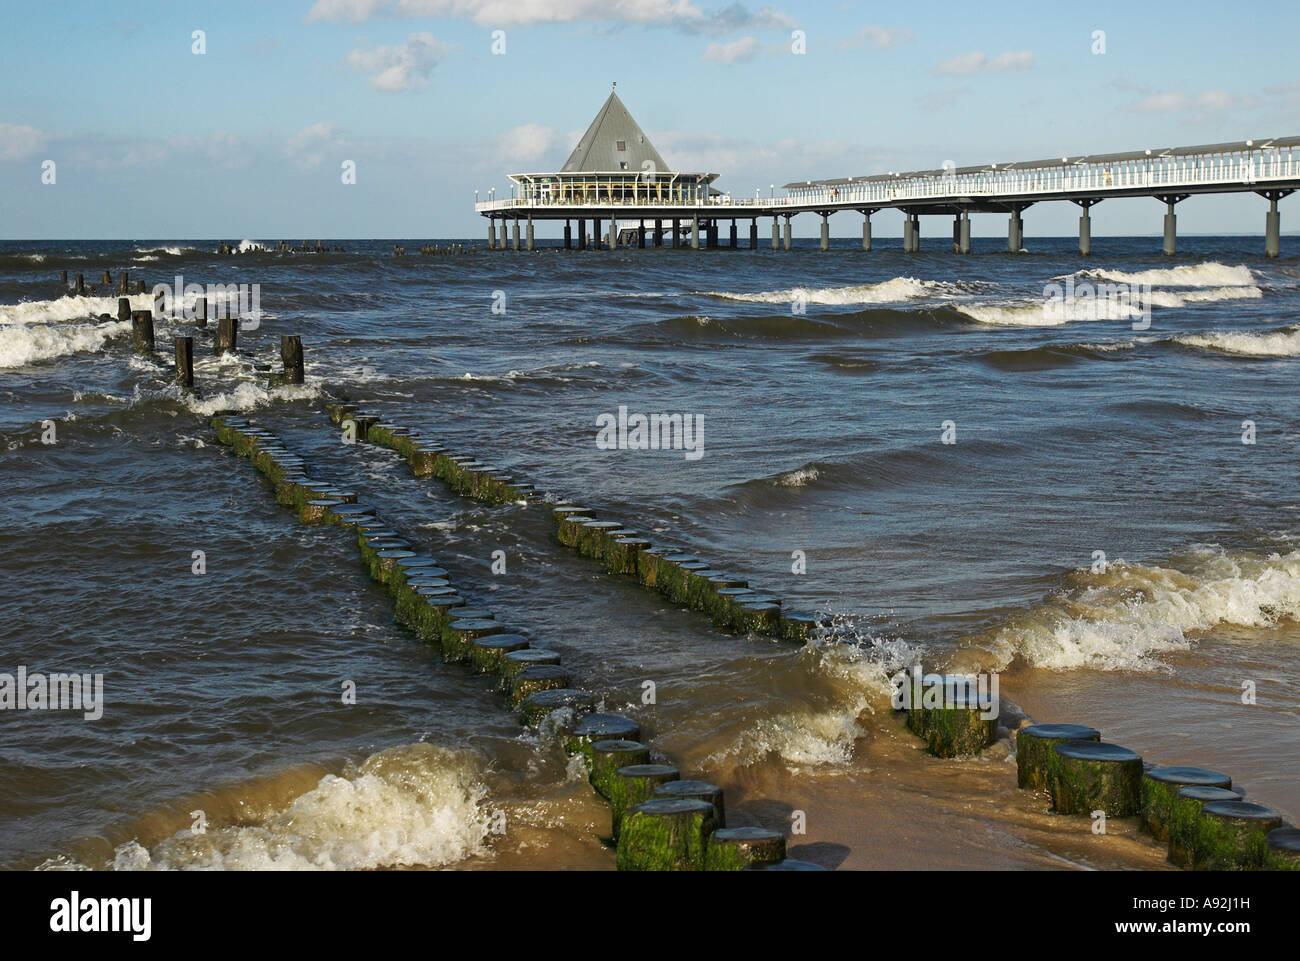 Pier at sea at Heringsdorf, Usedom island, Mecklenburg Western Pomerania, Germany, Europe Stock Photo